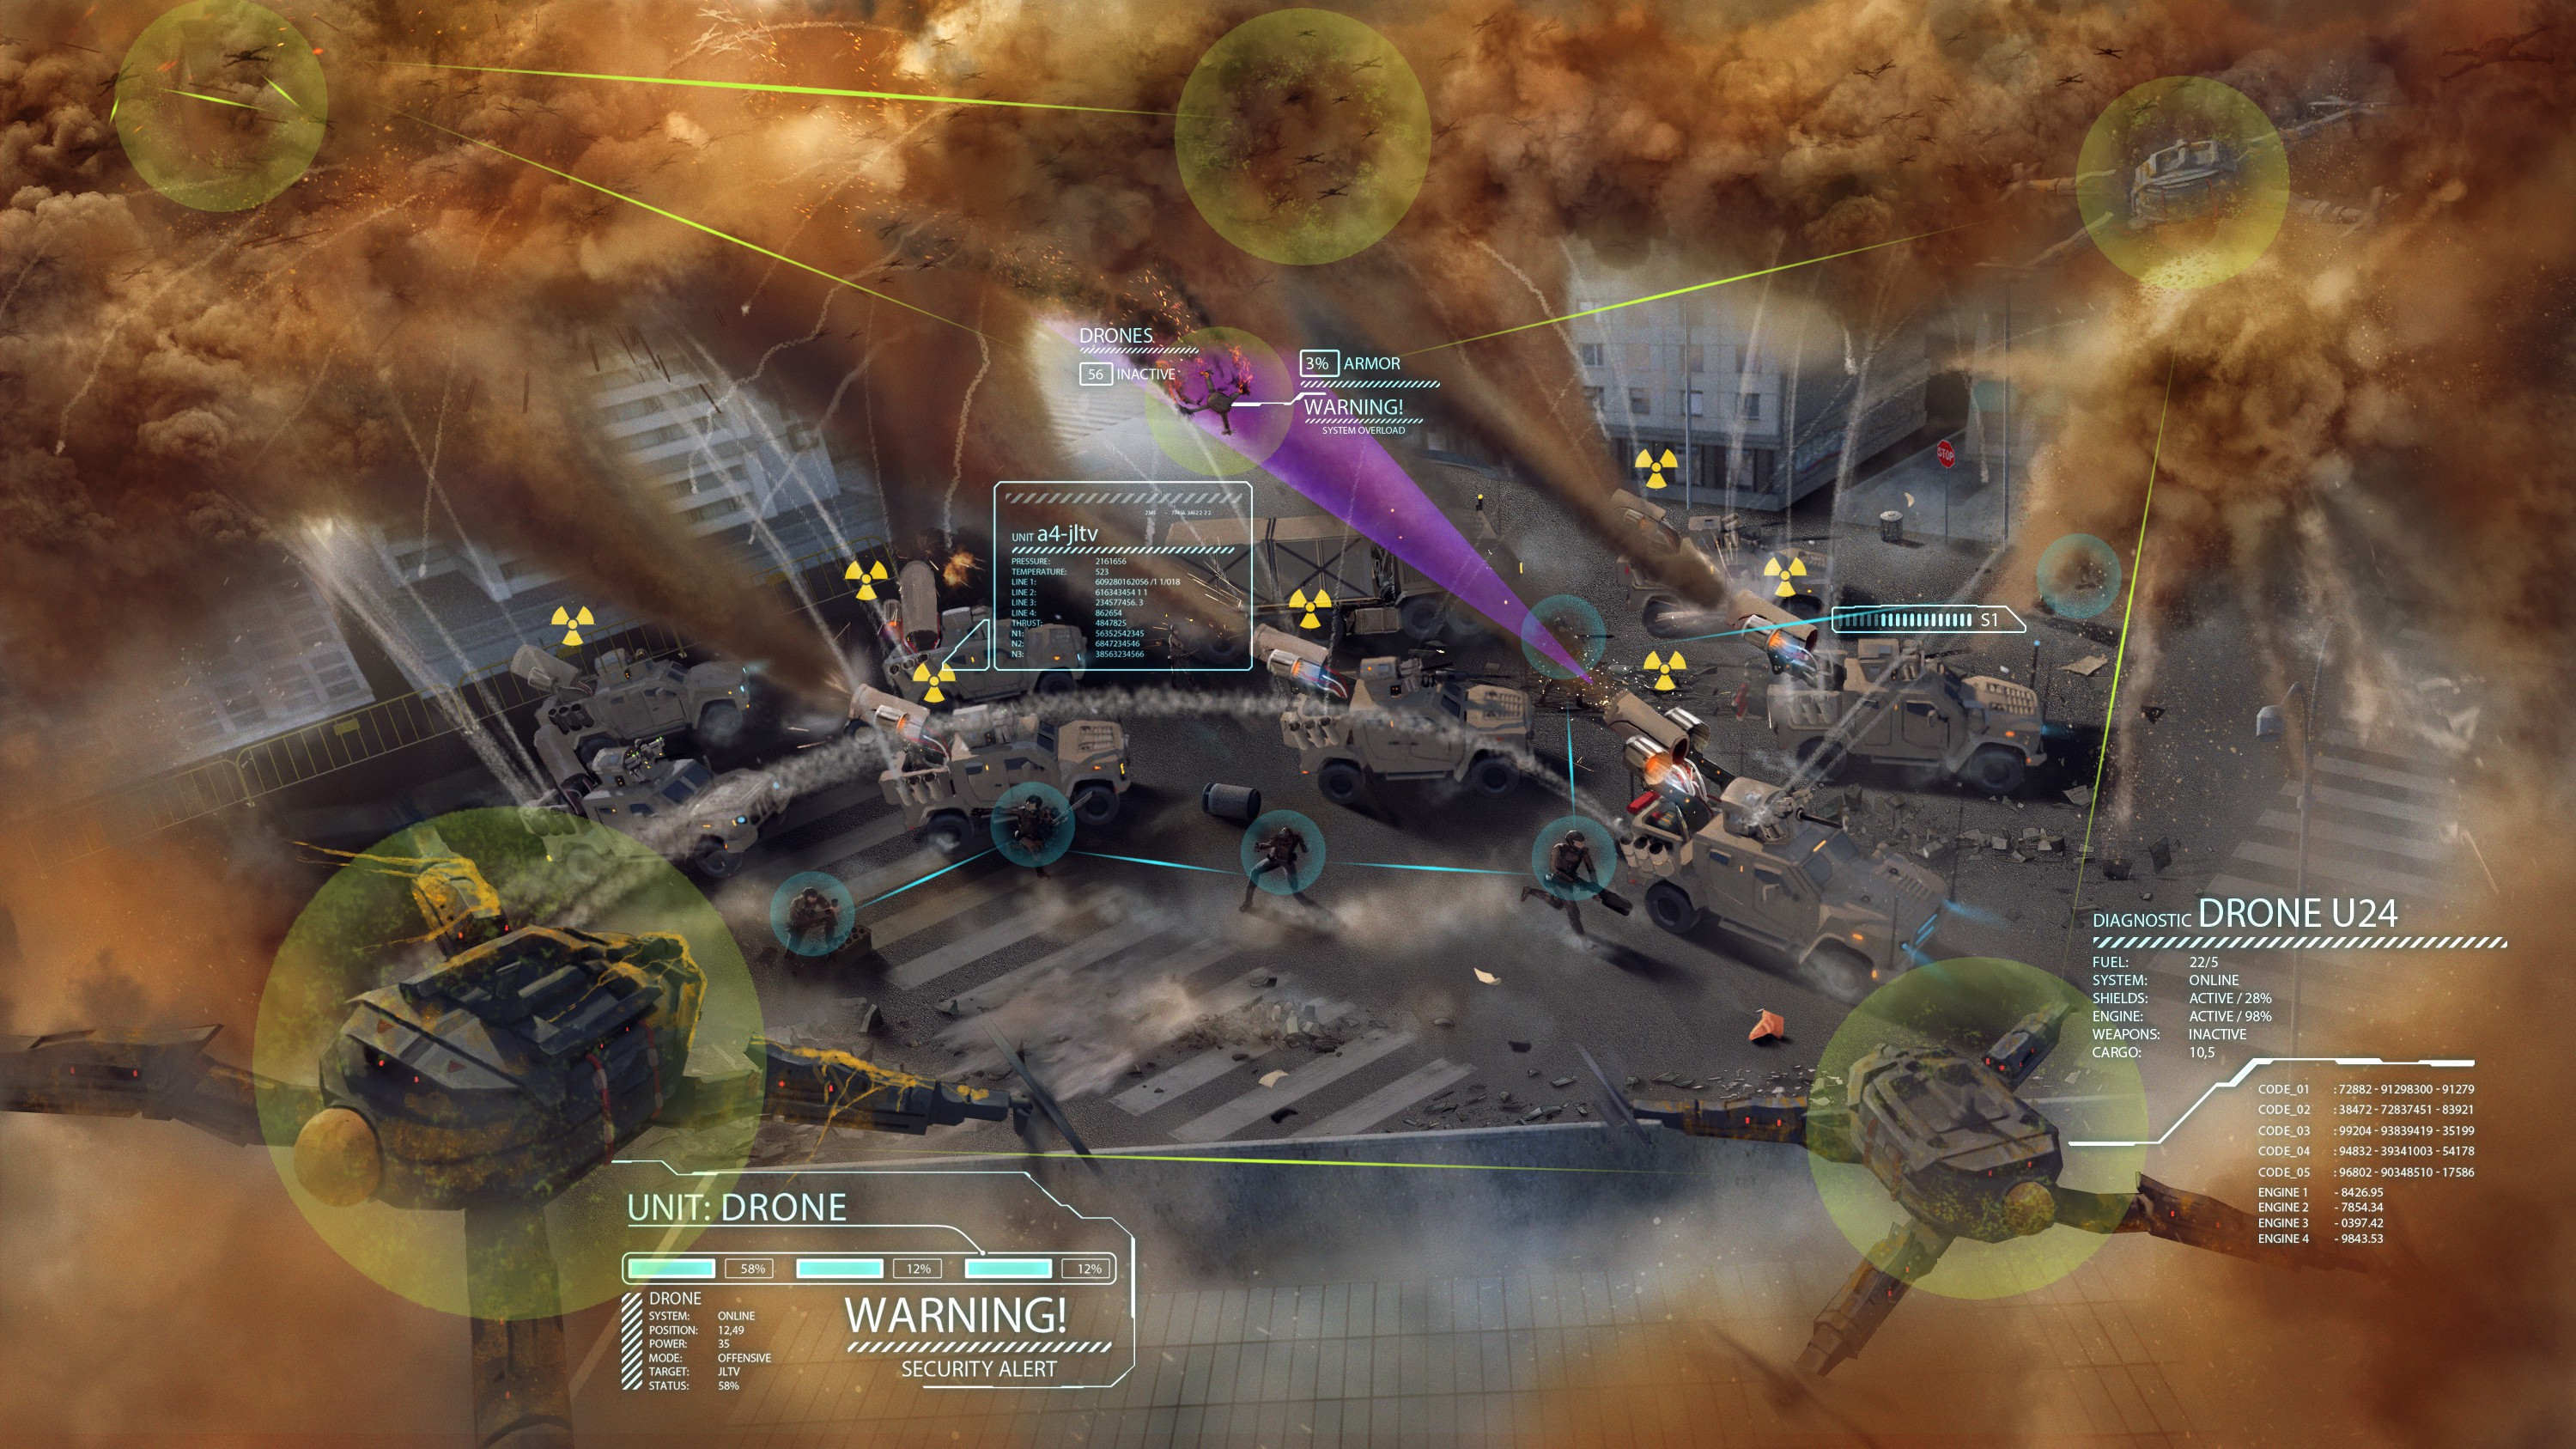 Illustrate a drone swarm attack and defense operation.